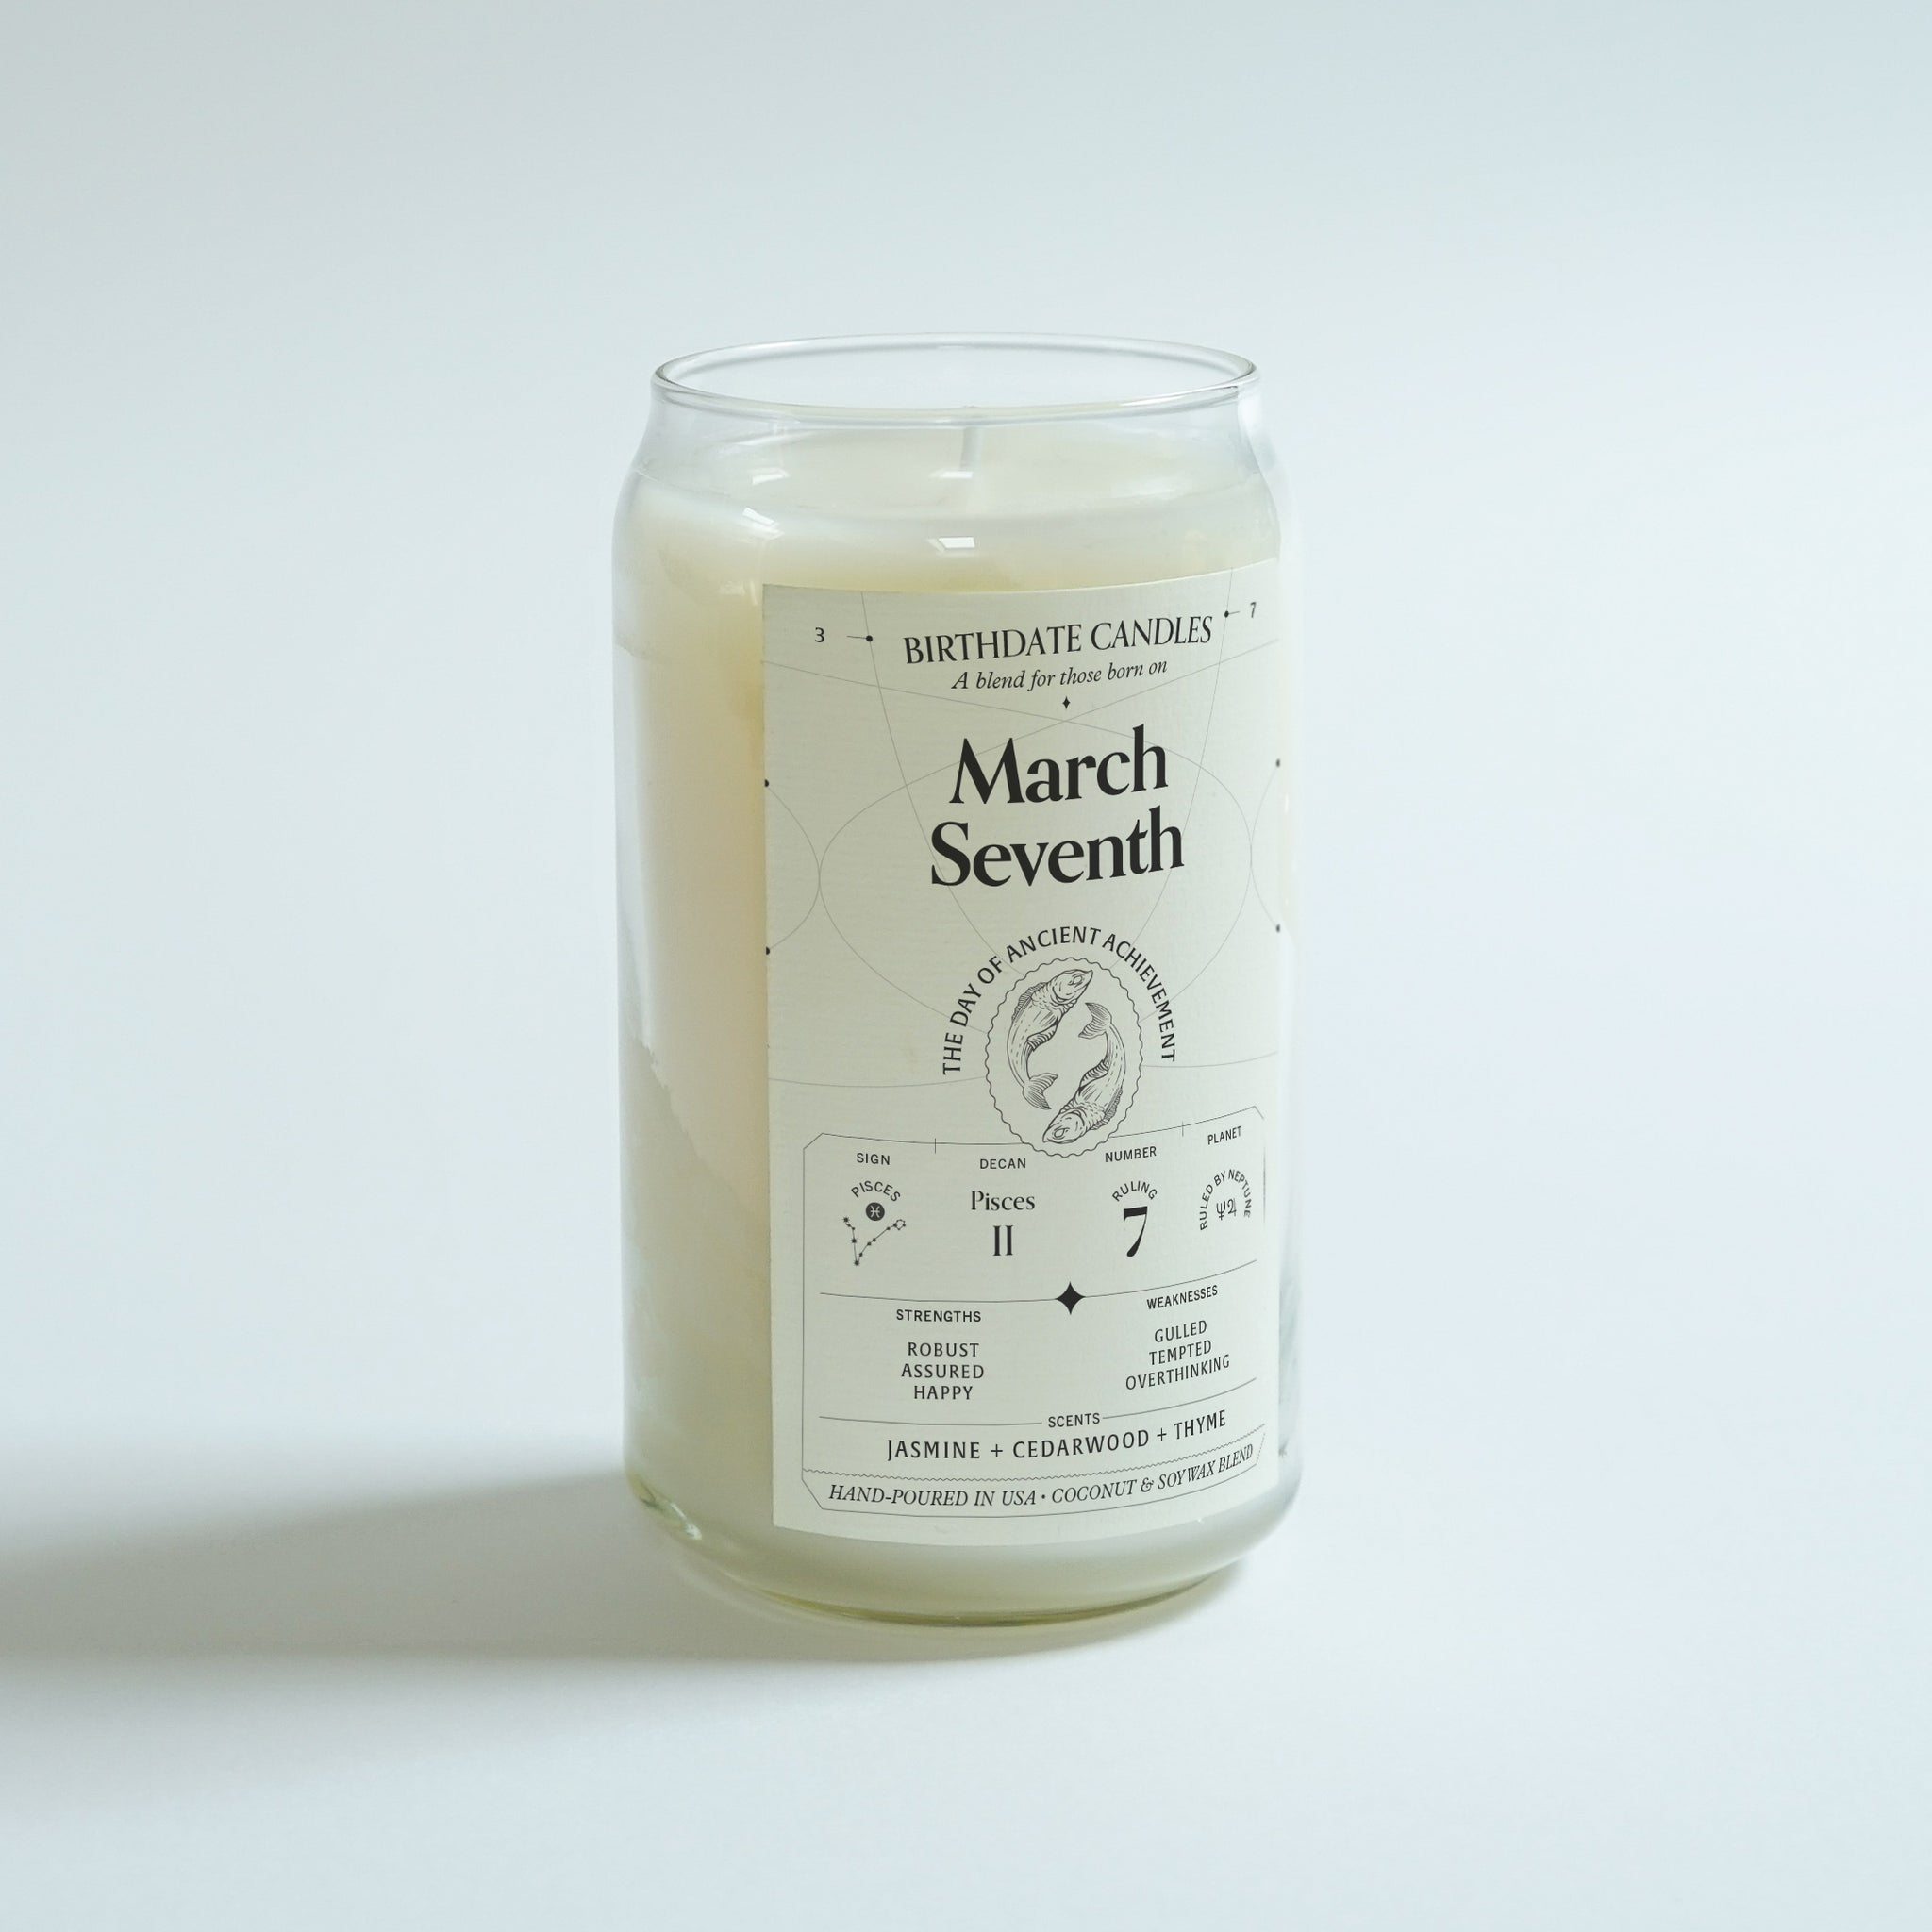 The March Seventh Candle